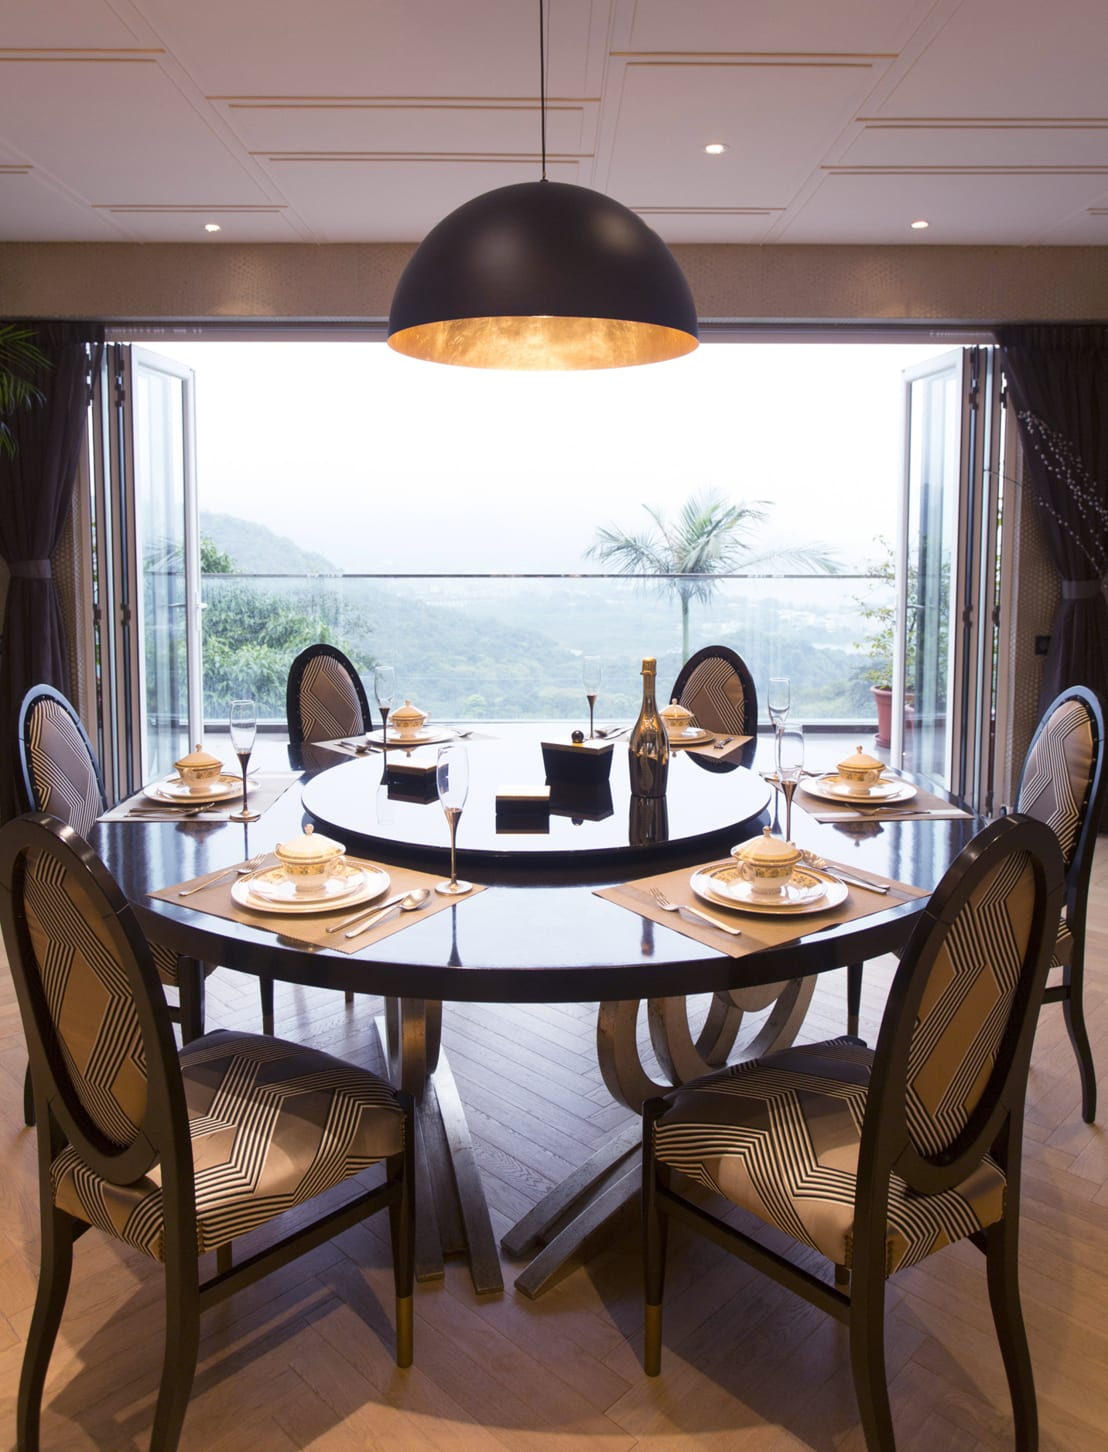 Tycoon place hong kong by another design london limited for Q dining room london